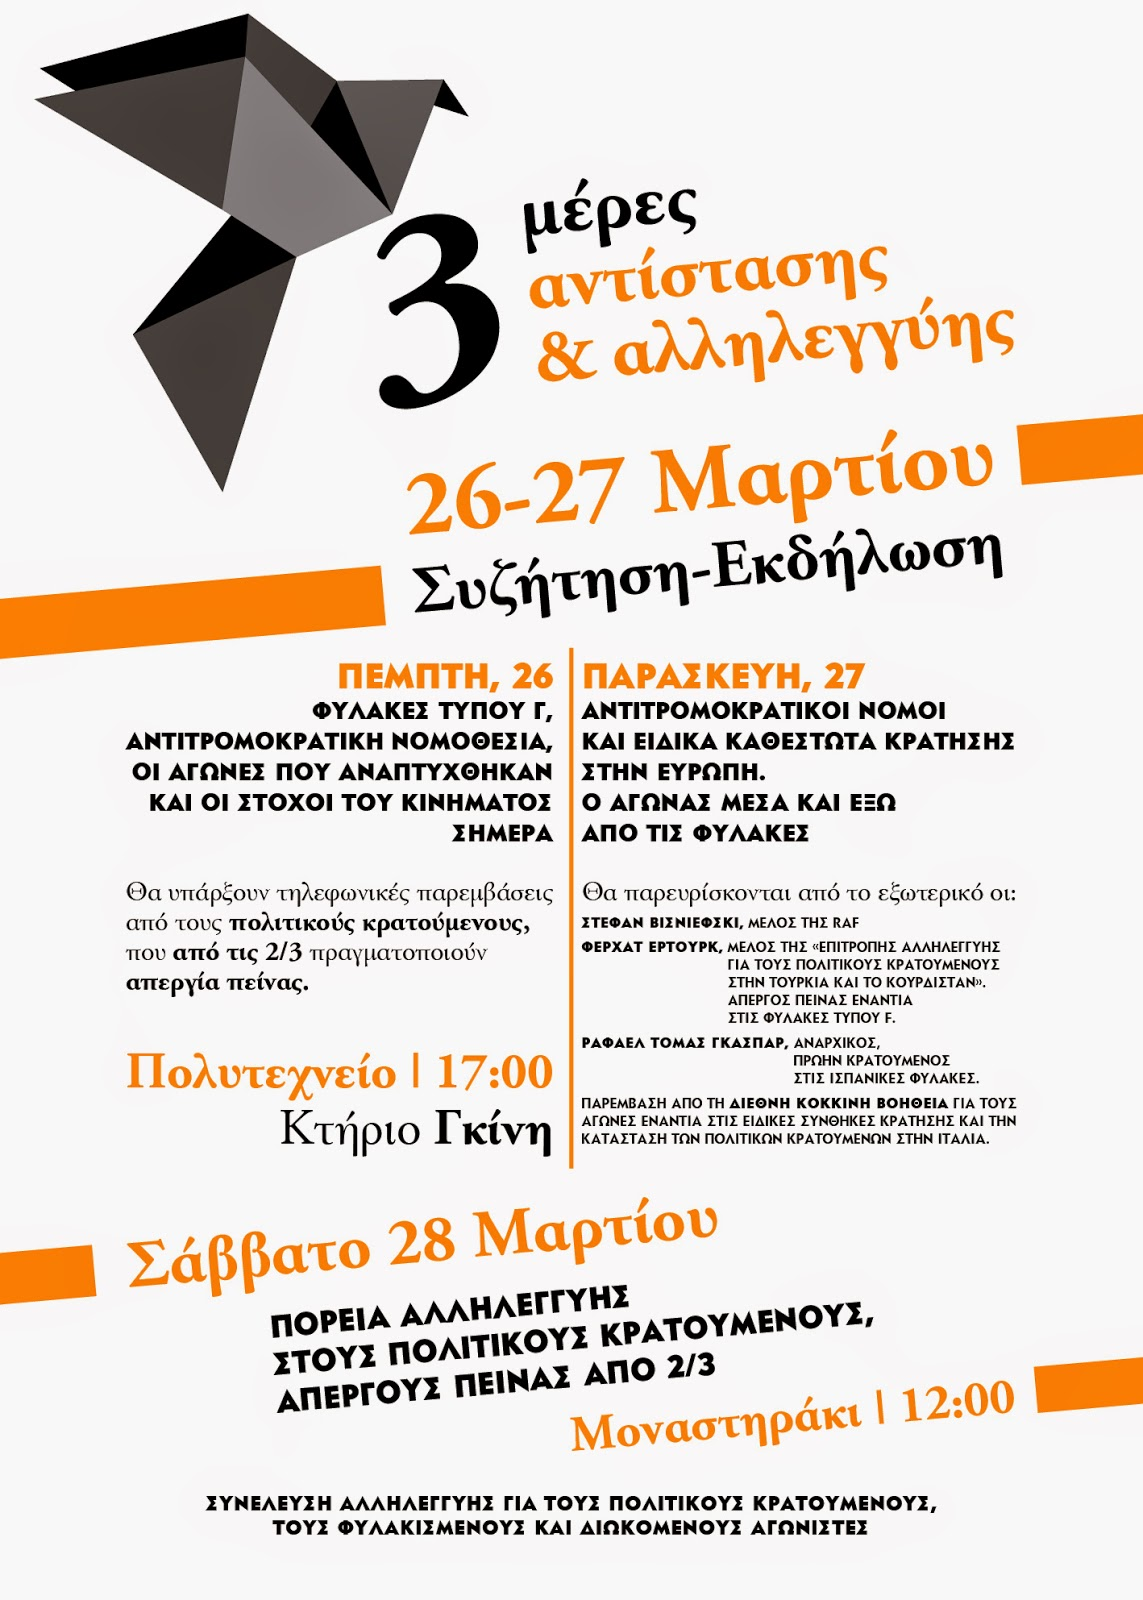 https://athens.indymedia.org/media/events/image1_dpWvt9X.JPG